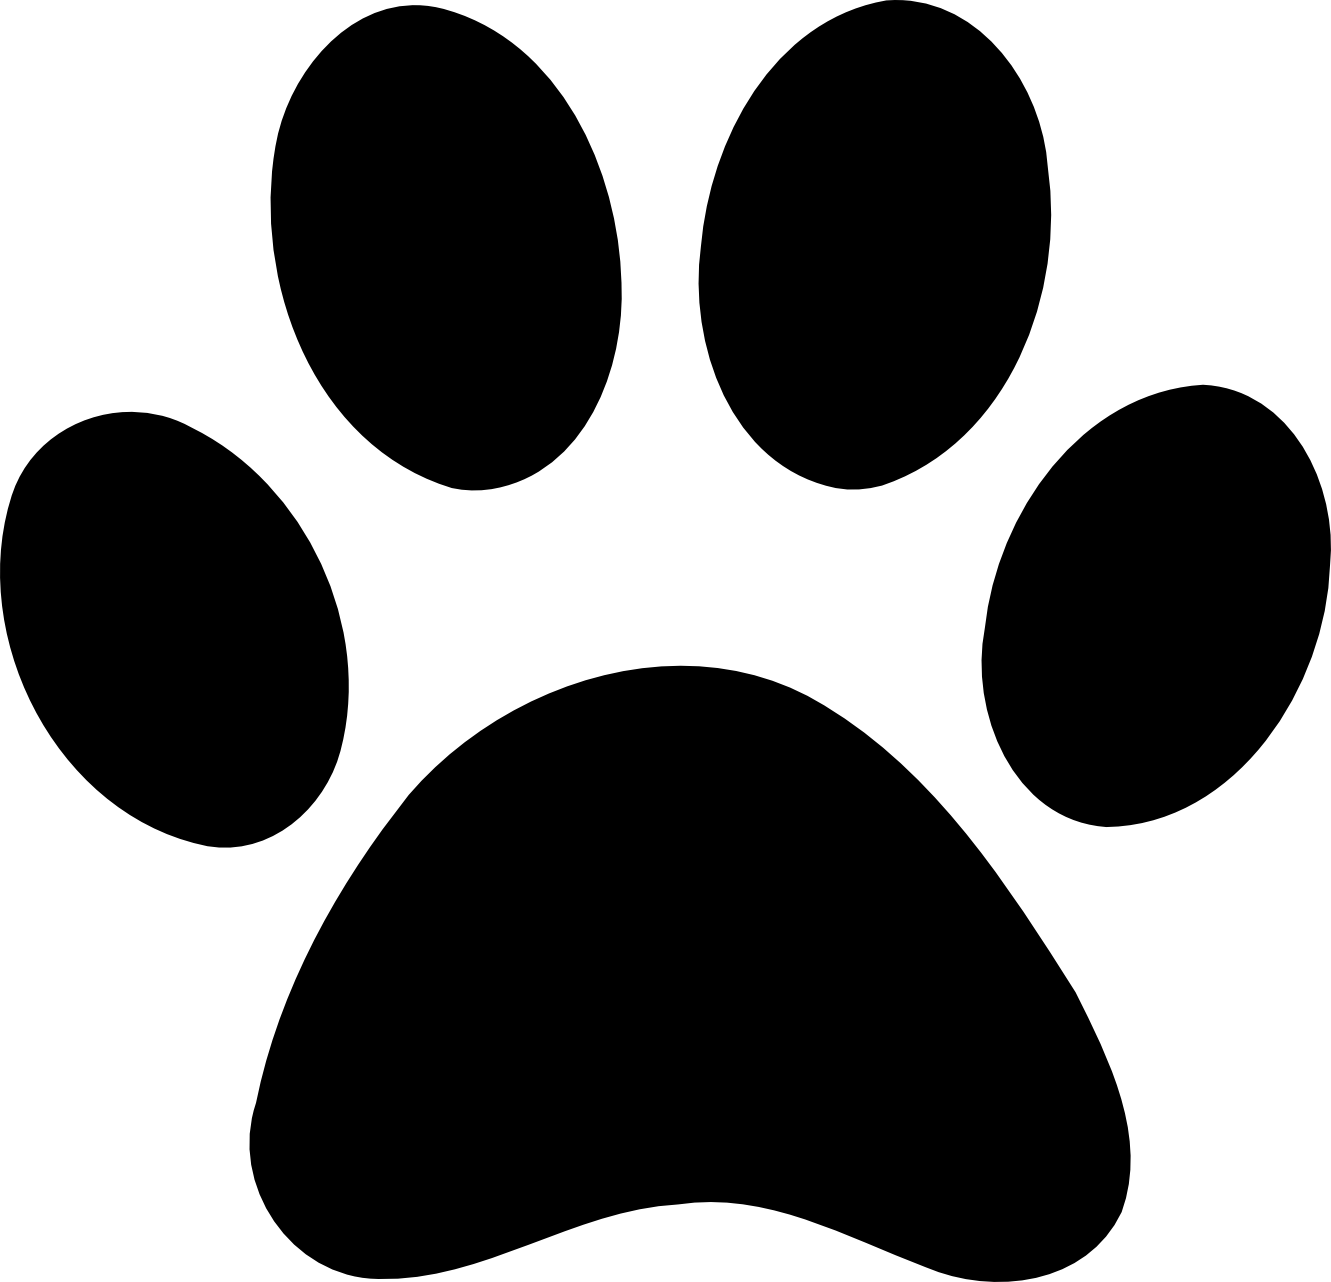 1331x1282 Paw Clipart Dog Bone